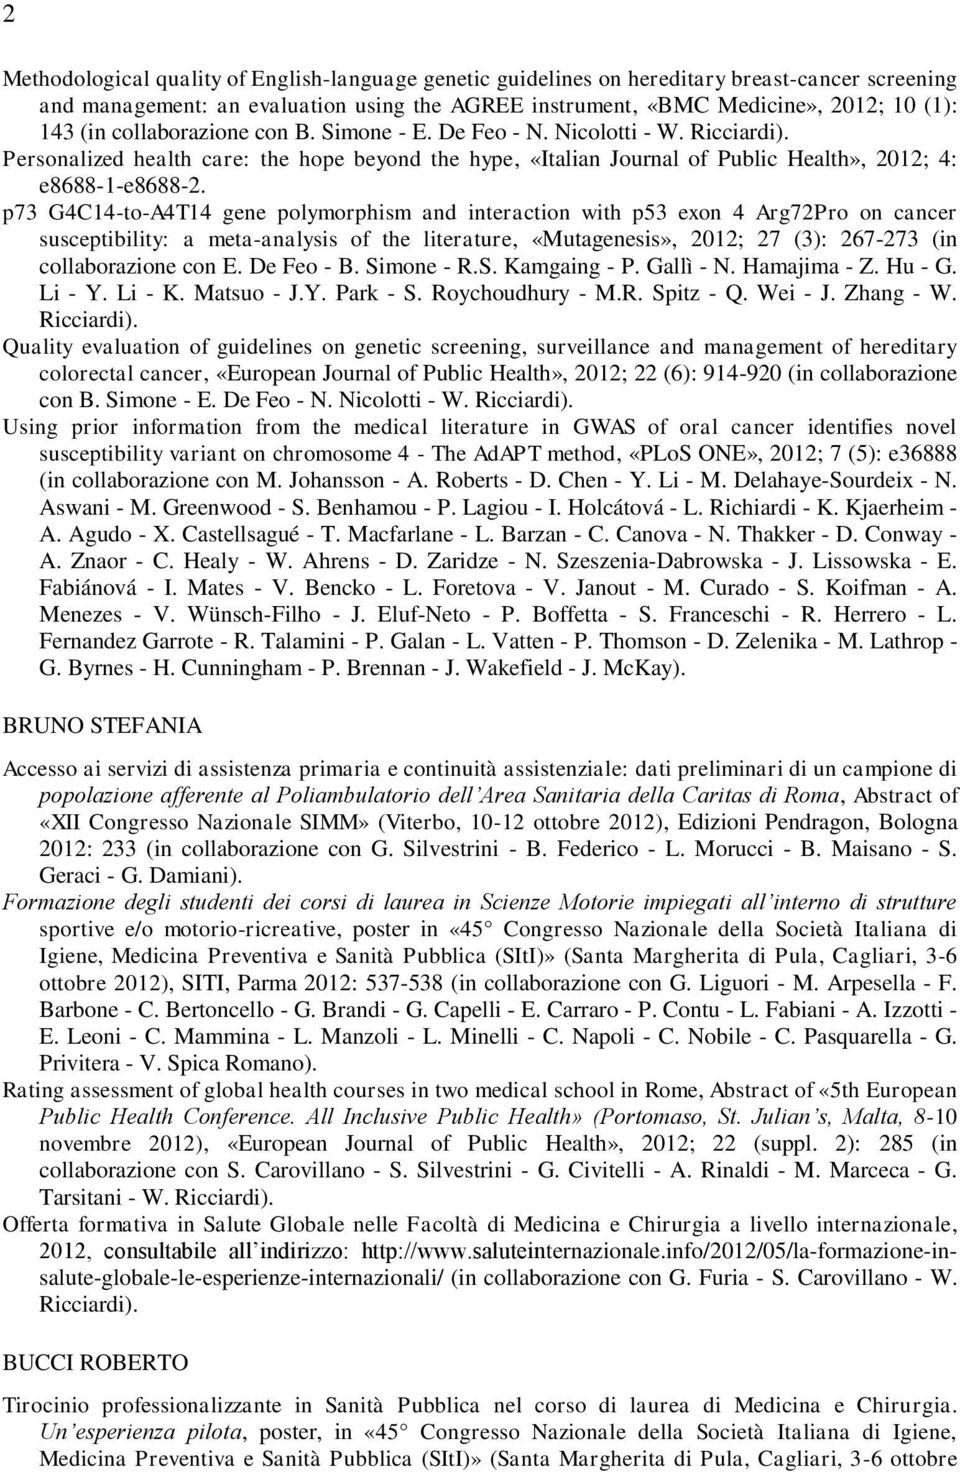 p73 G4C14-to-A4T14 gene polymorphism and interaction with p53 exon 4 Arg72Pro on cancer susceptibility: a meta-analysis of the literature, «Mutagenesis», 2012; 27 (3): 267-273 (in collaborazione con